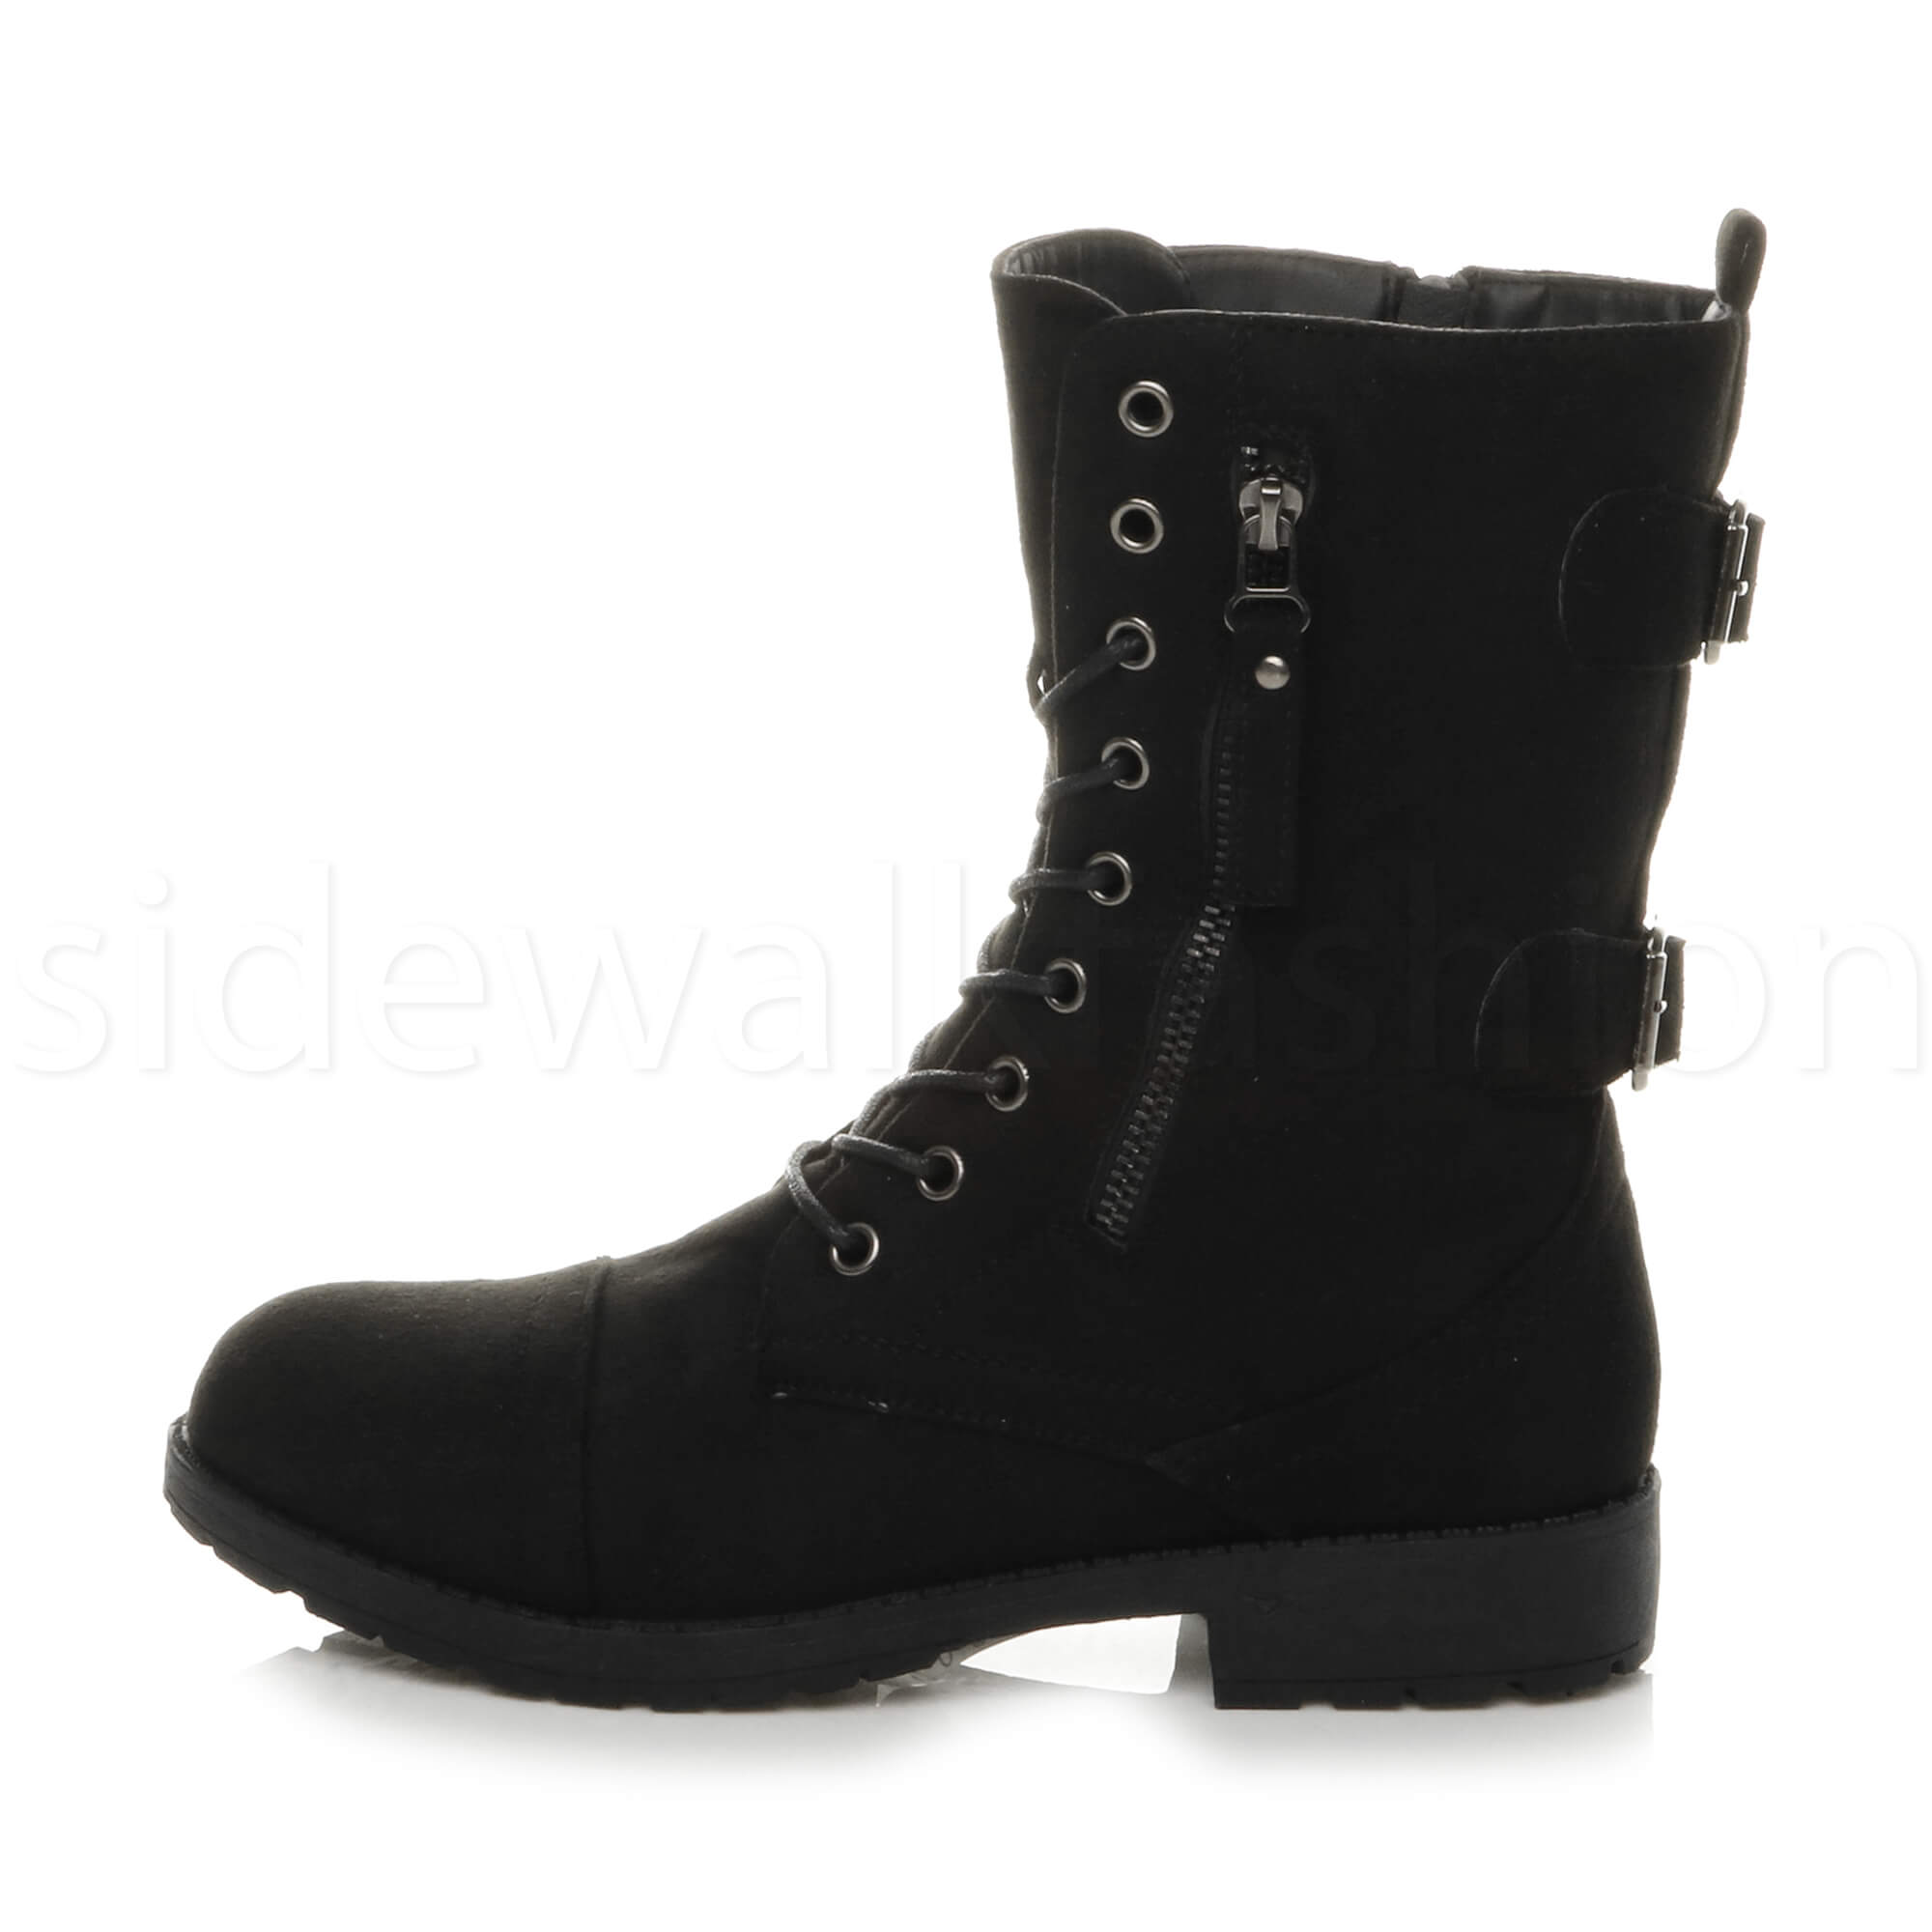 Womens-ladies-low-heel-flat-lace-up-zip-combat-biker-military-ankle-boots-size thumbnail 19